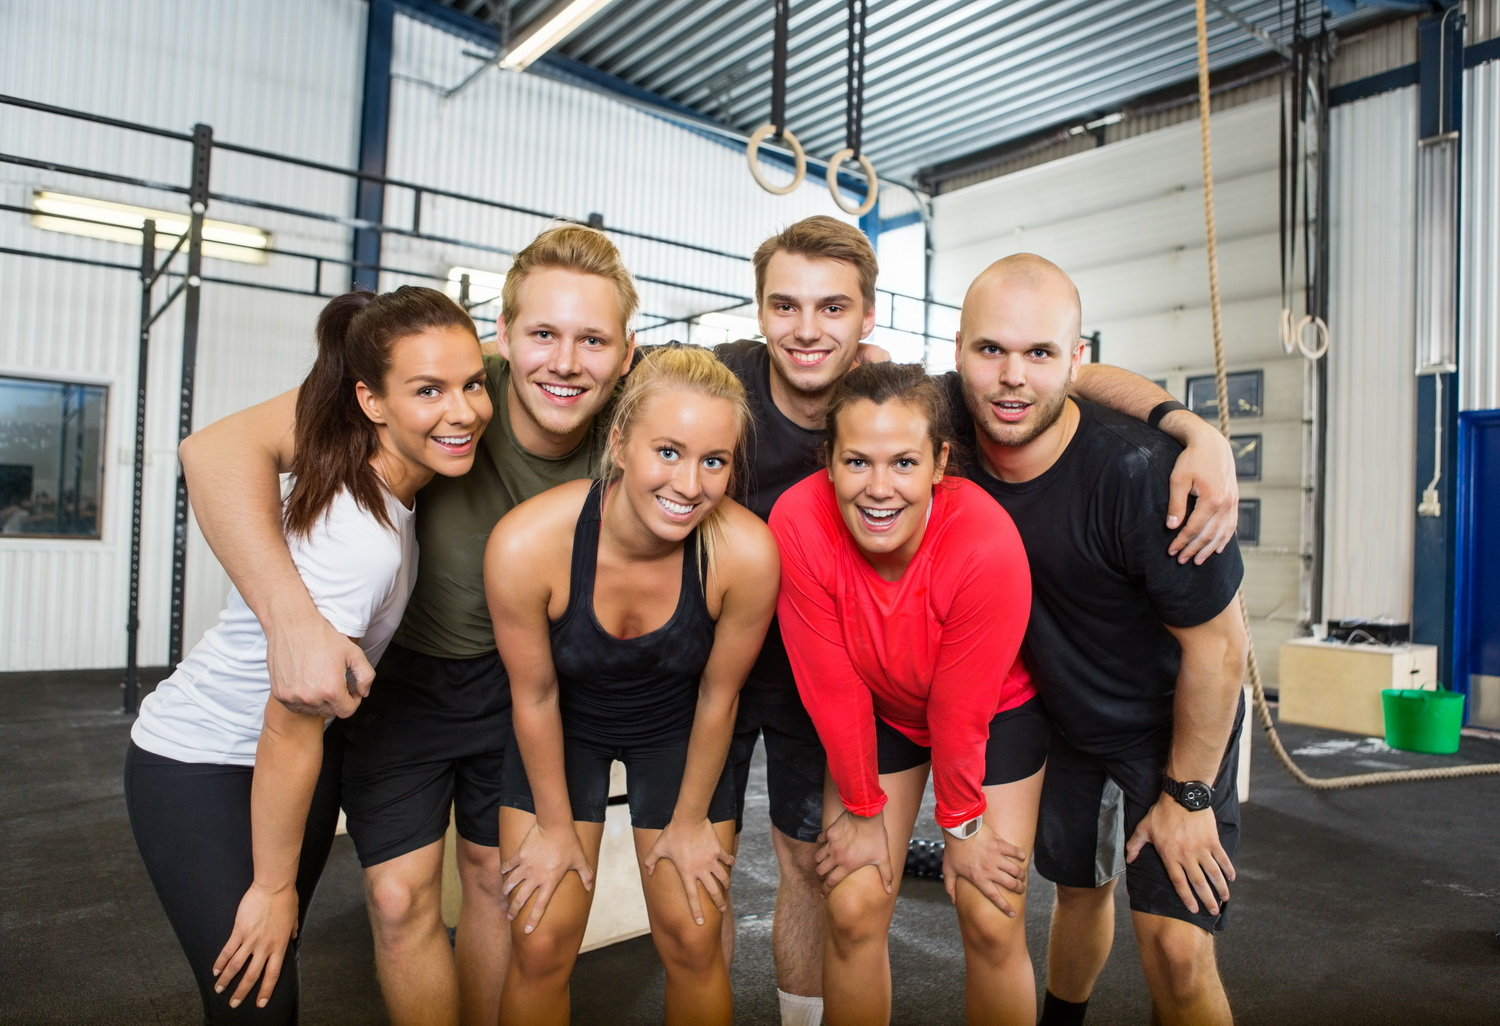 Group Of Happy Athletes Standing At cross fitness box